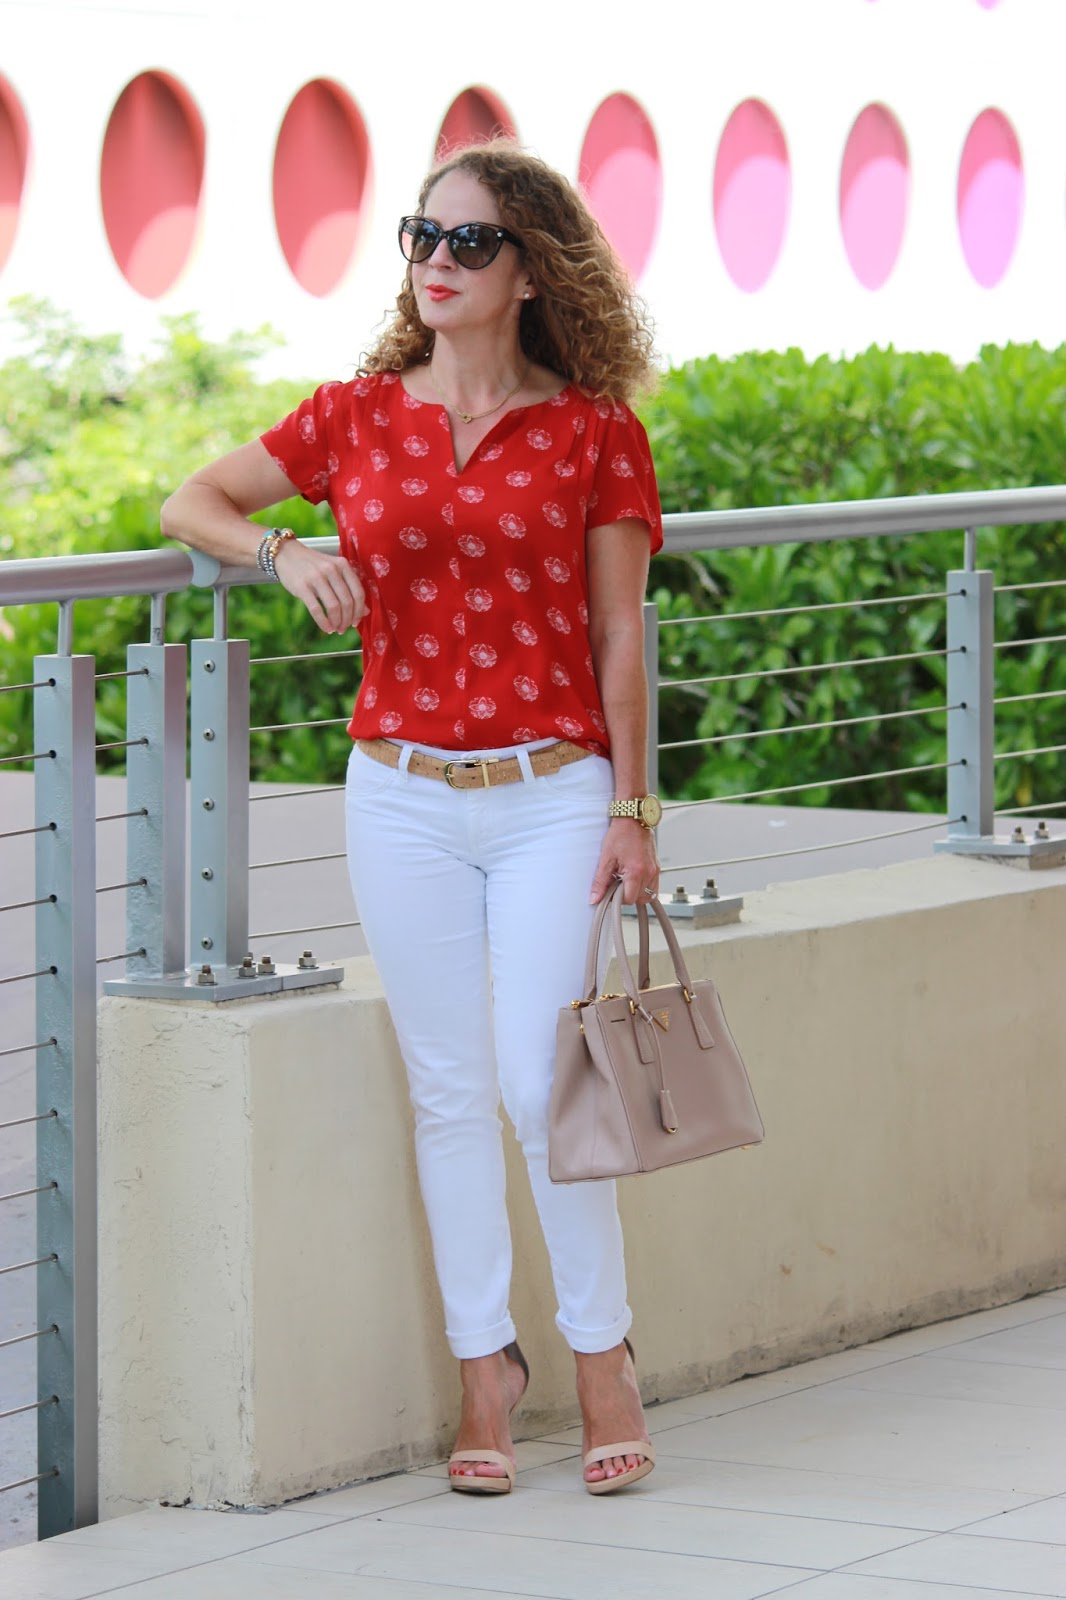 Girl in a Hot City: Red and White